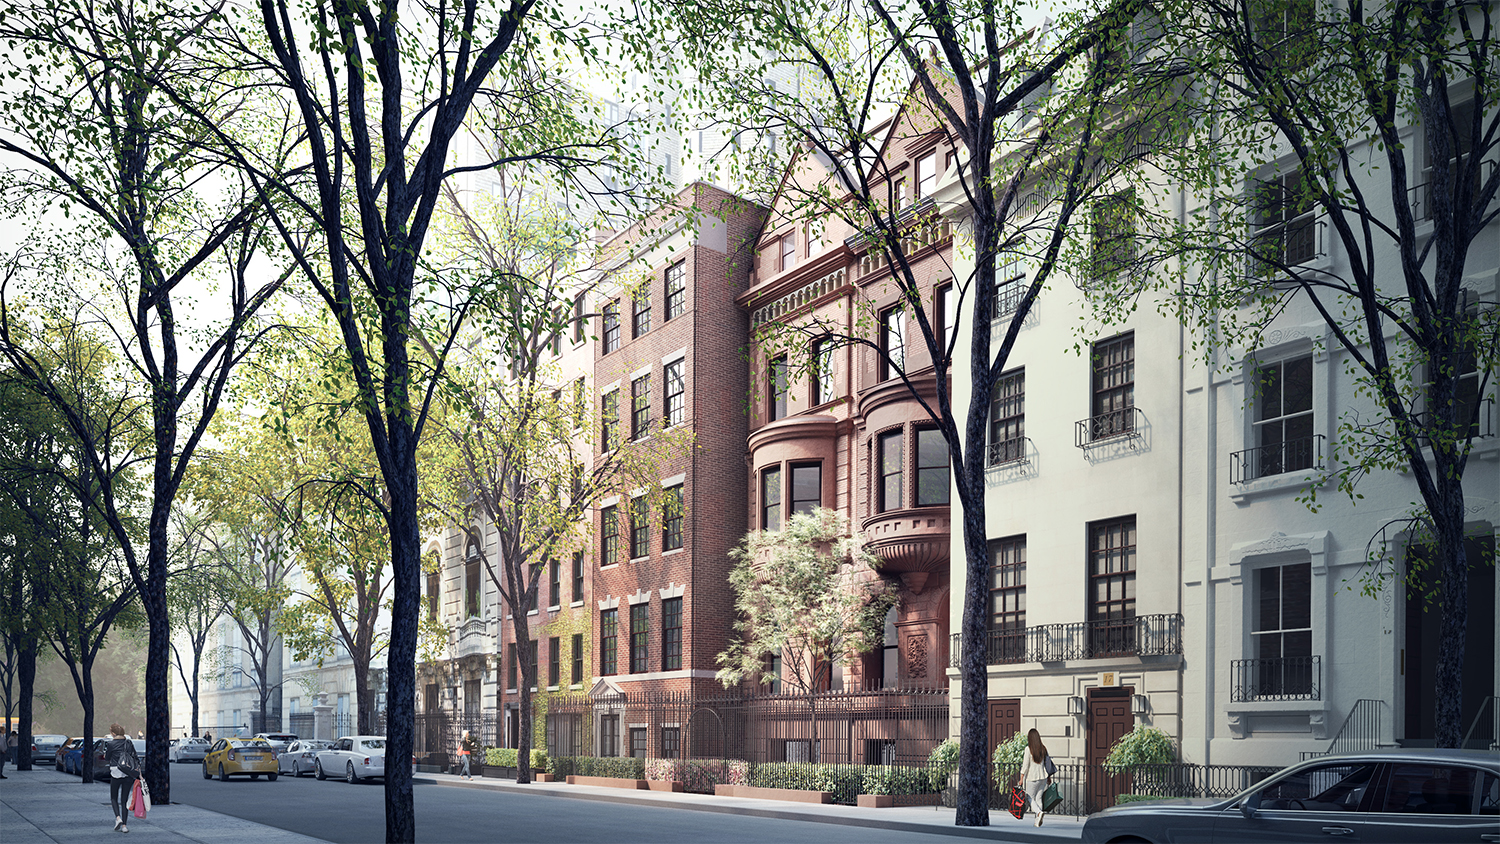 Current proposal for 11-15 East 75th Street